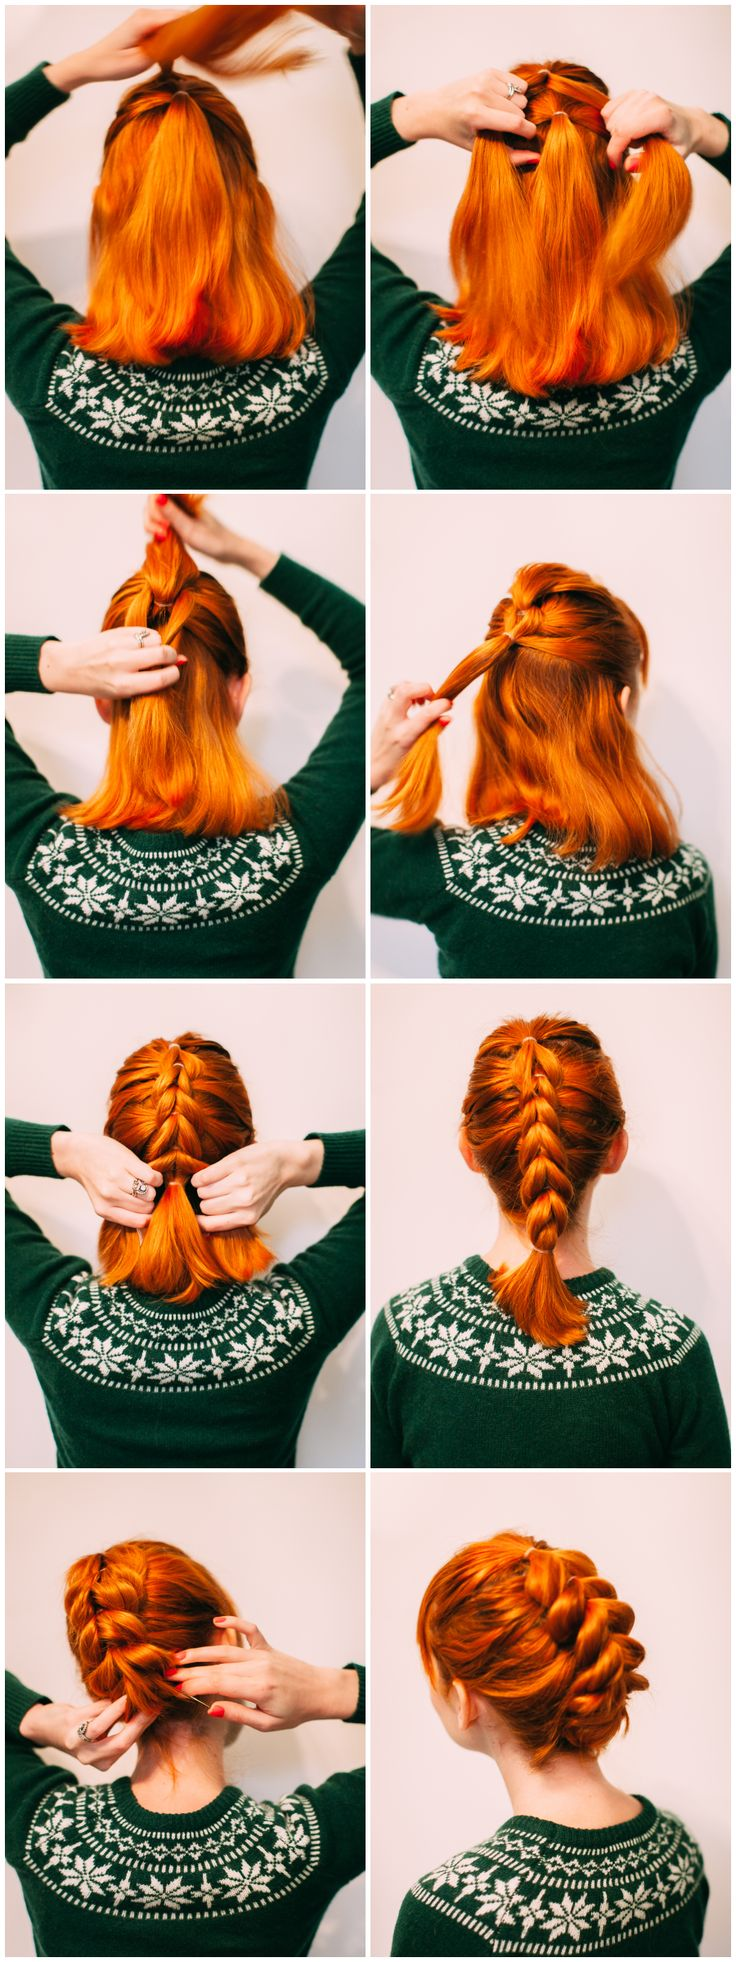 #GingerHairInspiration